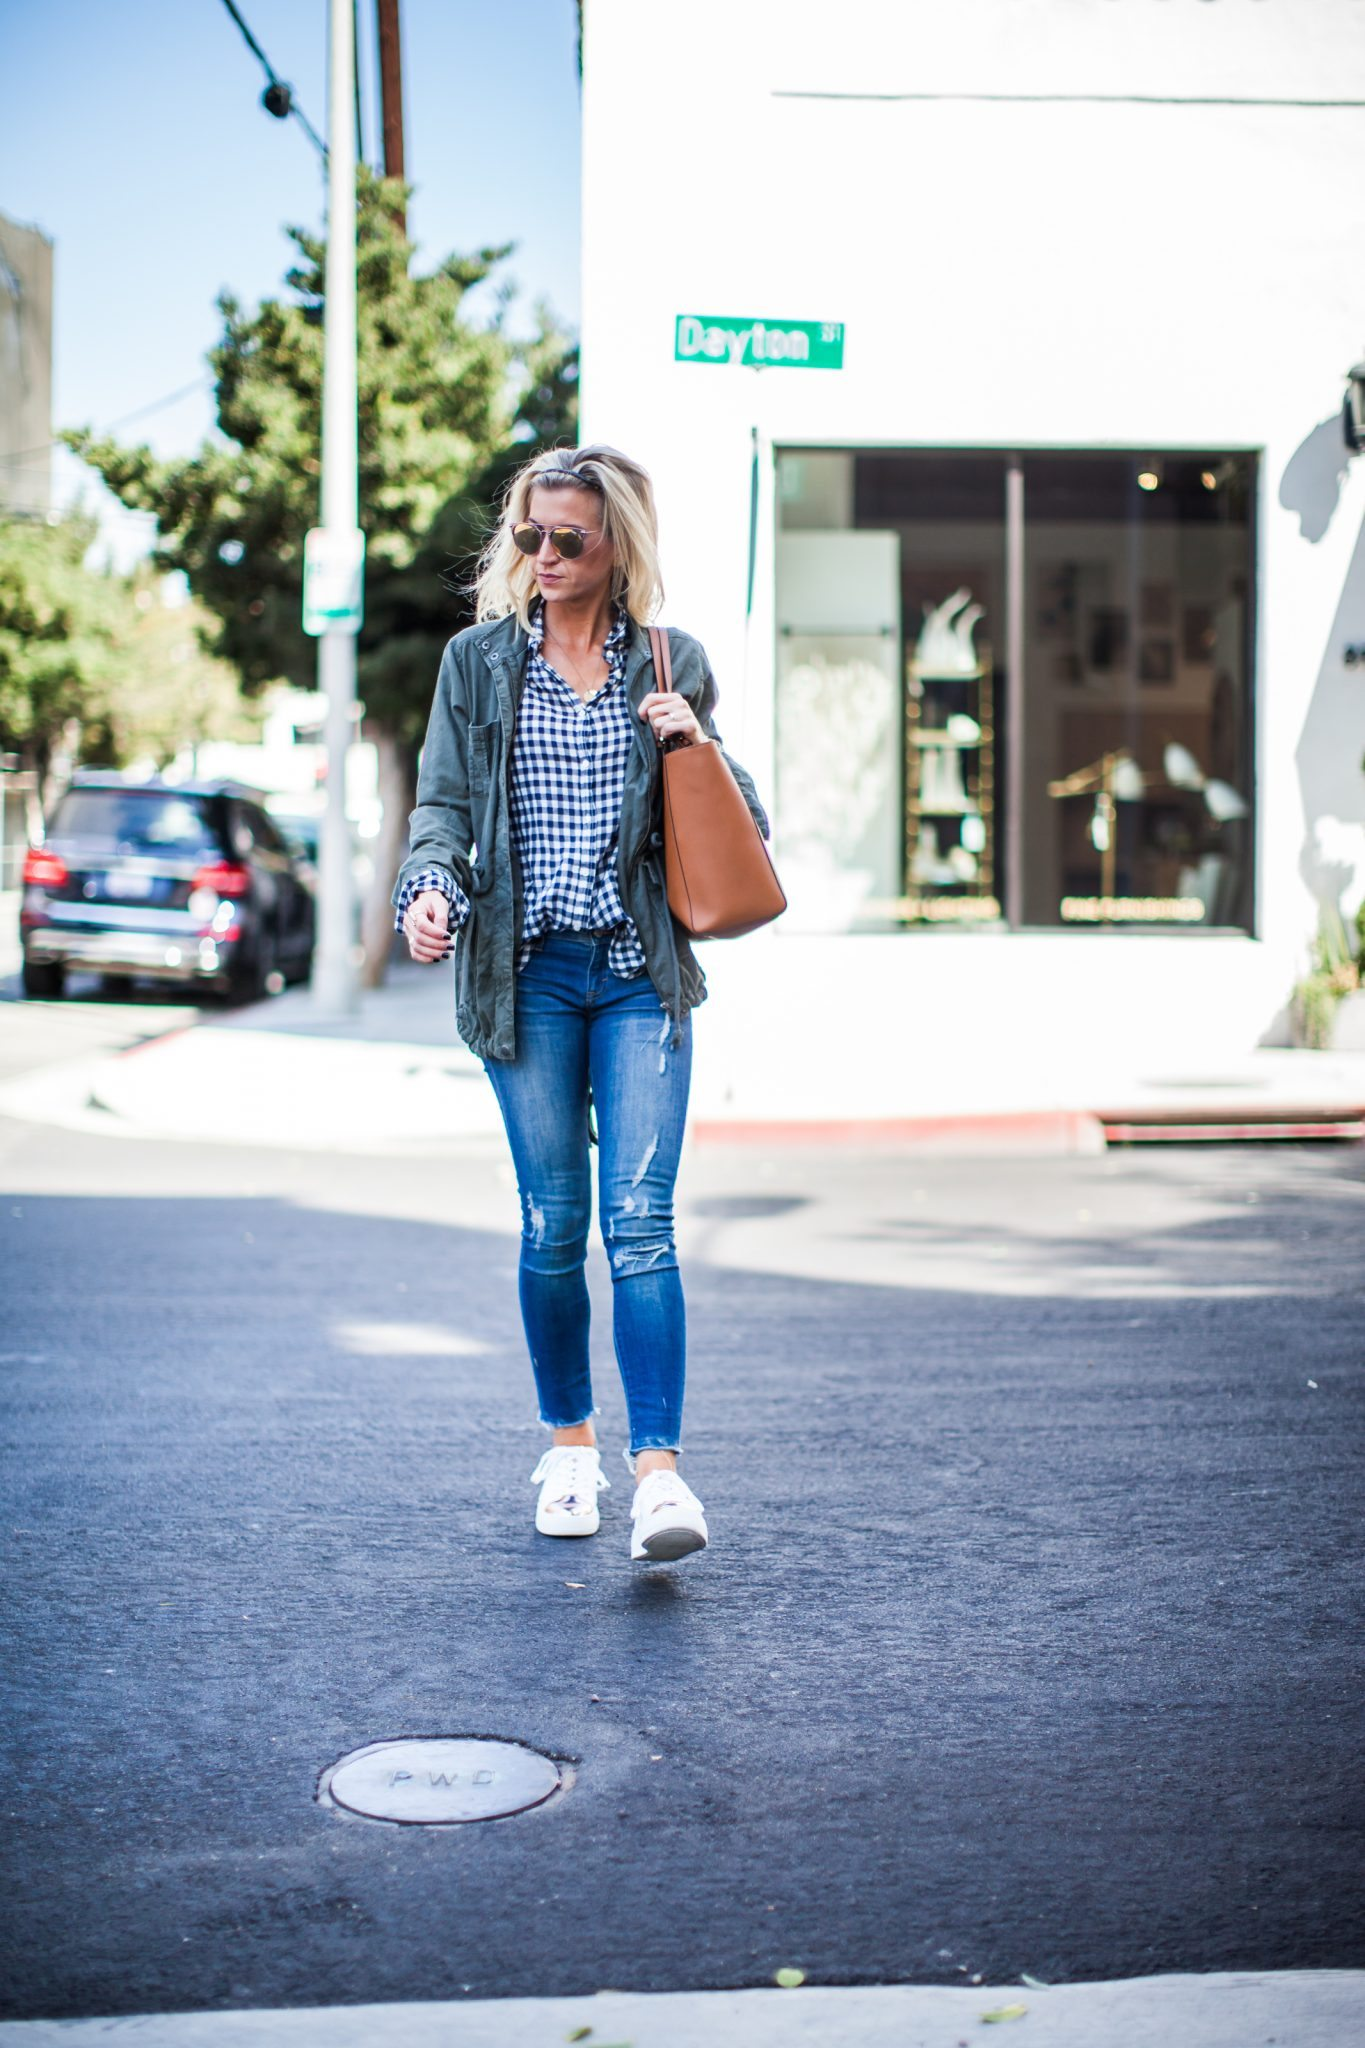 Casual fall style- Gingham top + utility jacket + gold toe sneakers.